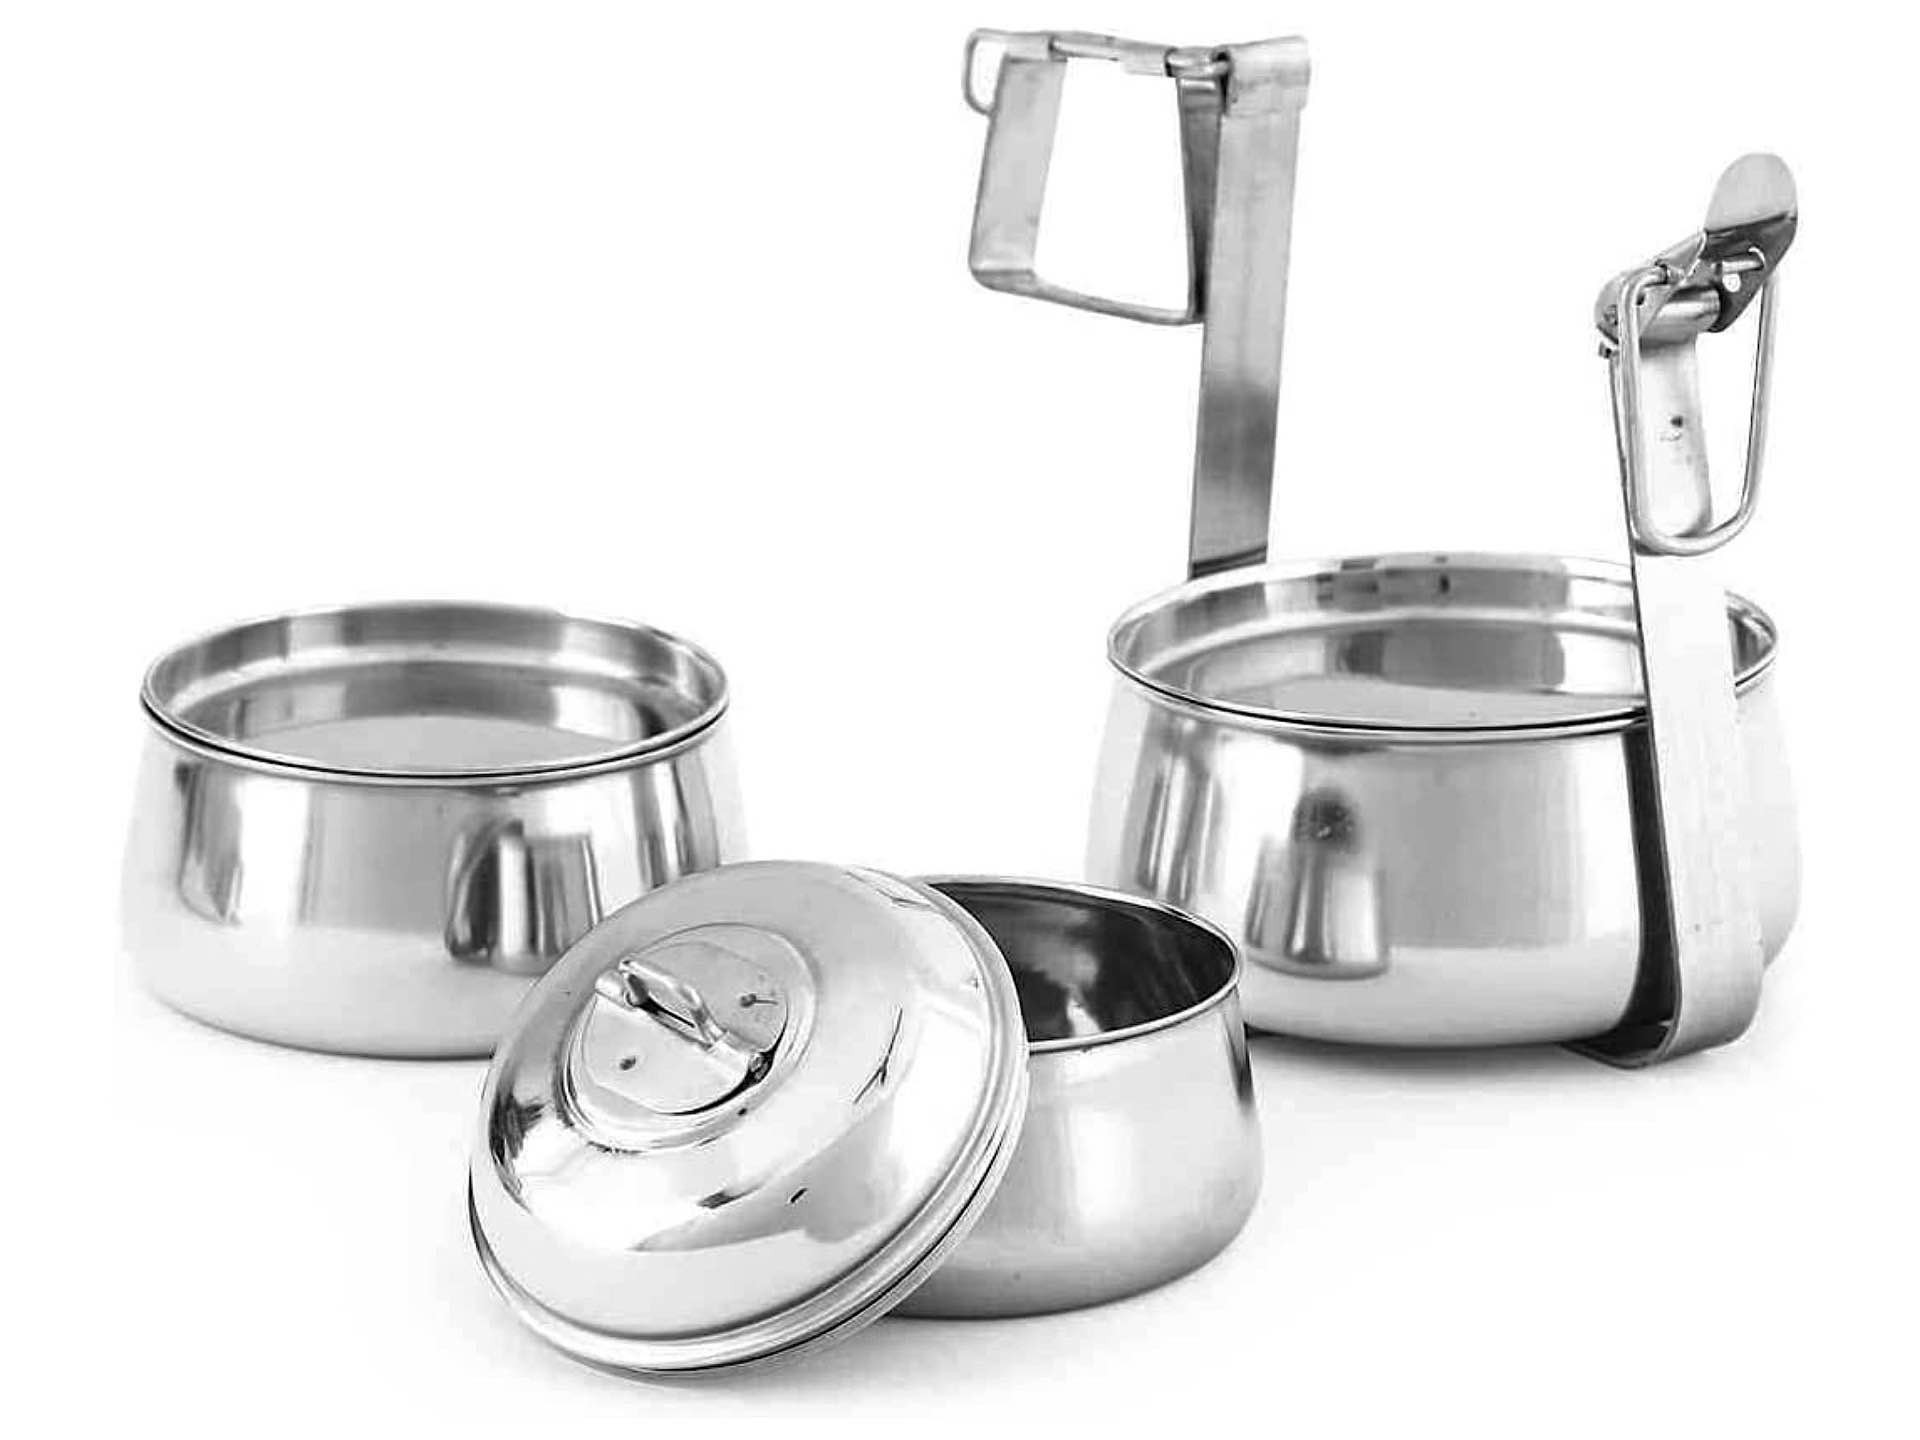 king-international-stainless-steel-pyramid-tiffin-lunchbox-containers